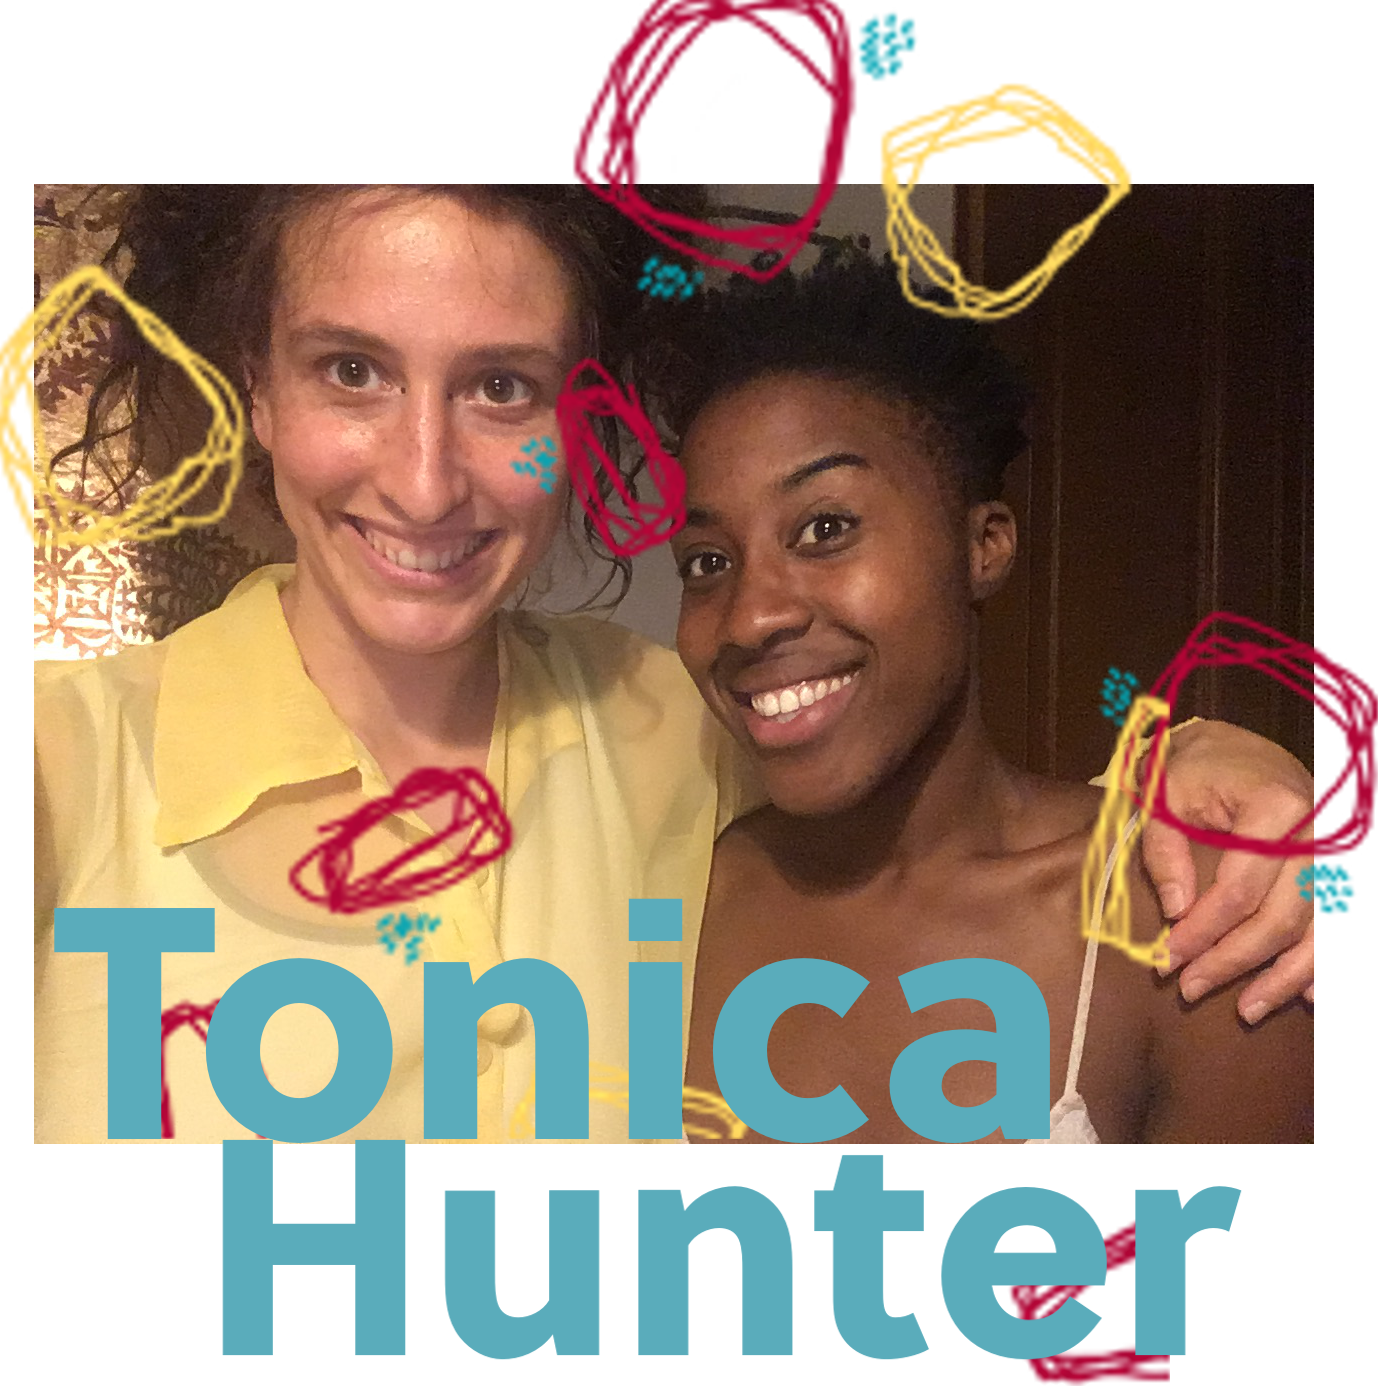 tonica1.png